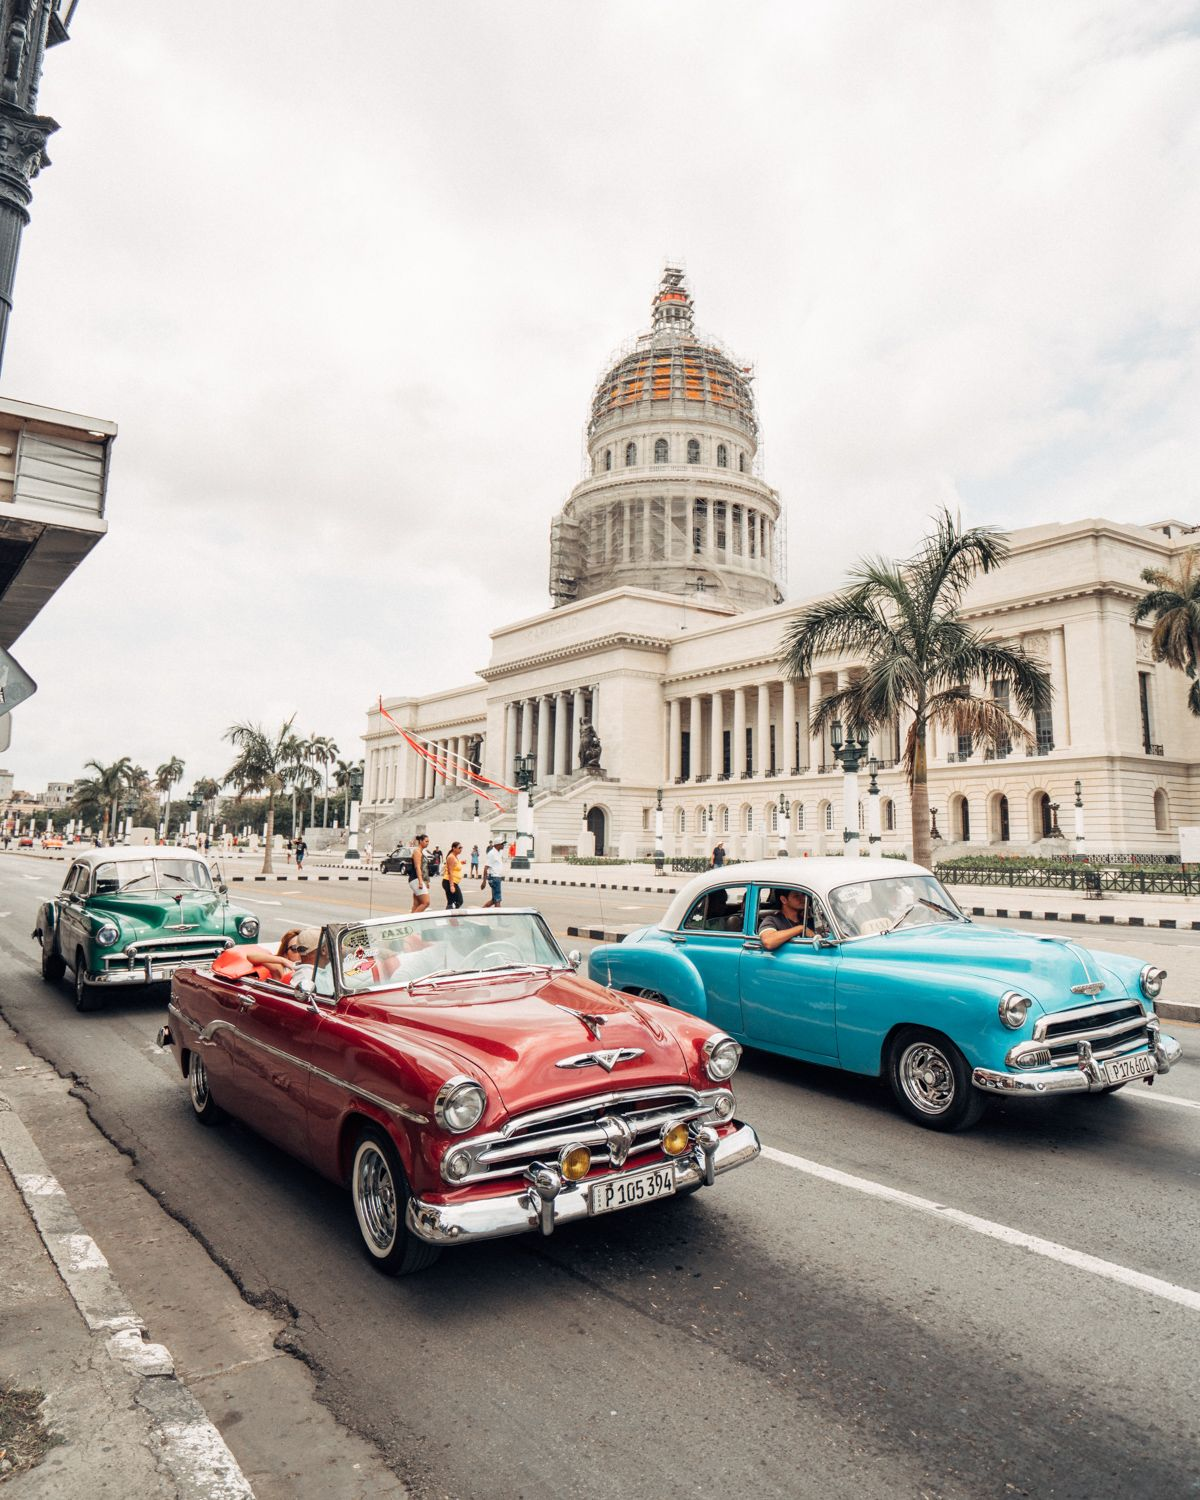 Havana, Cuba. My complete guide to this mysterious city.